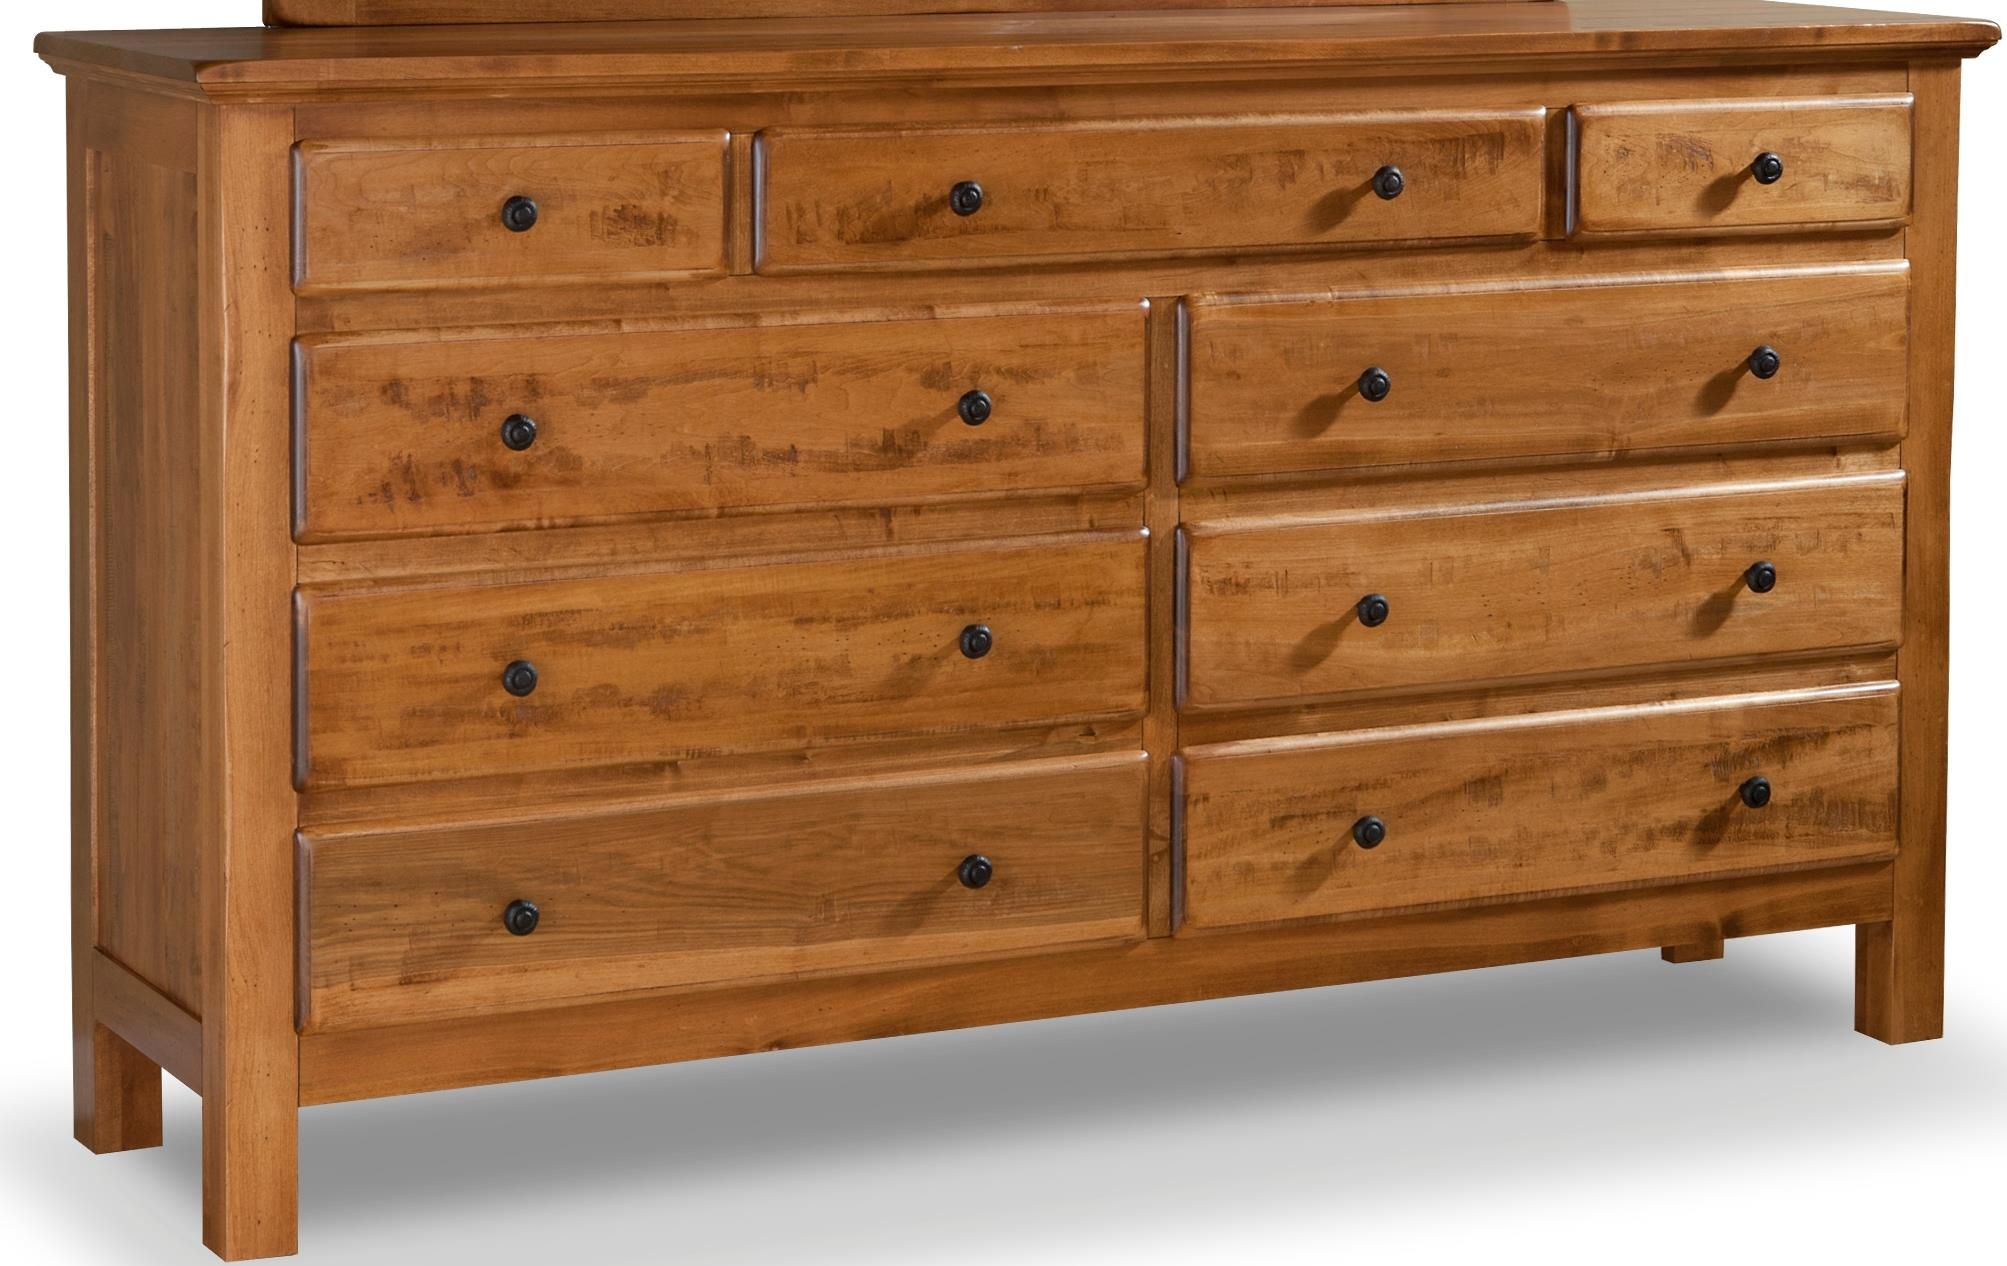 Lewiston Double Dresser by Daniel's Amish at Saugerties Furniture Mart